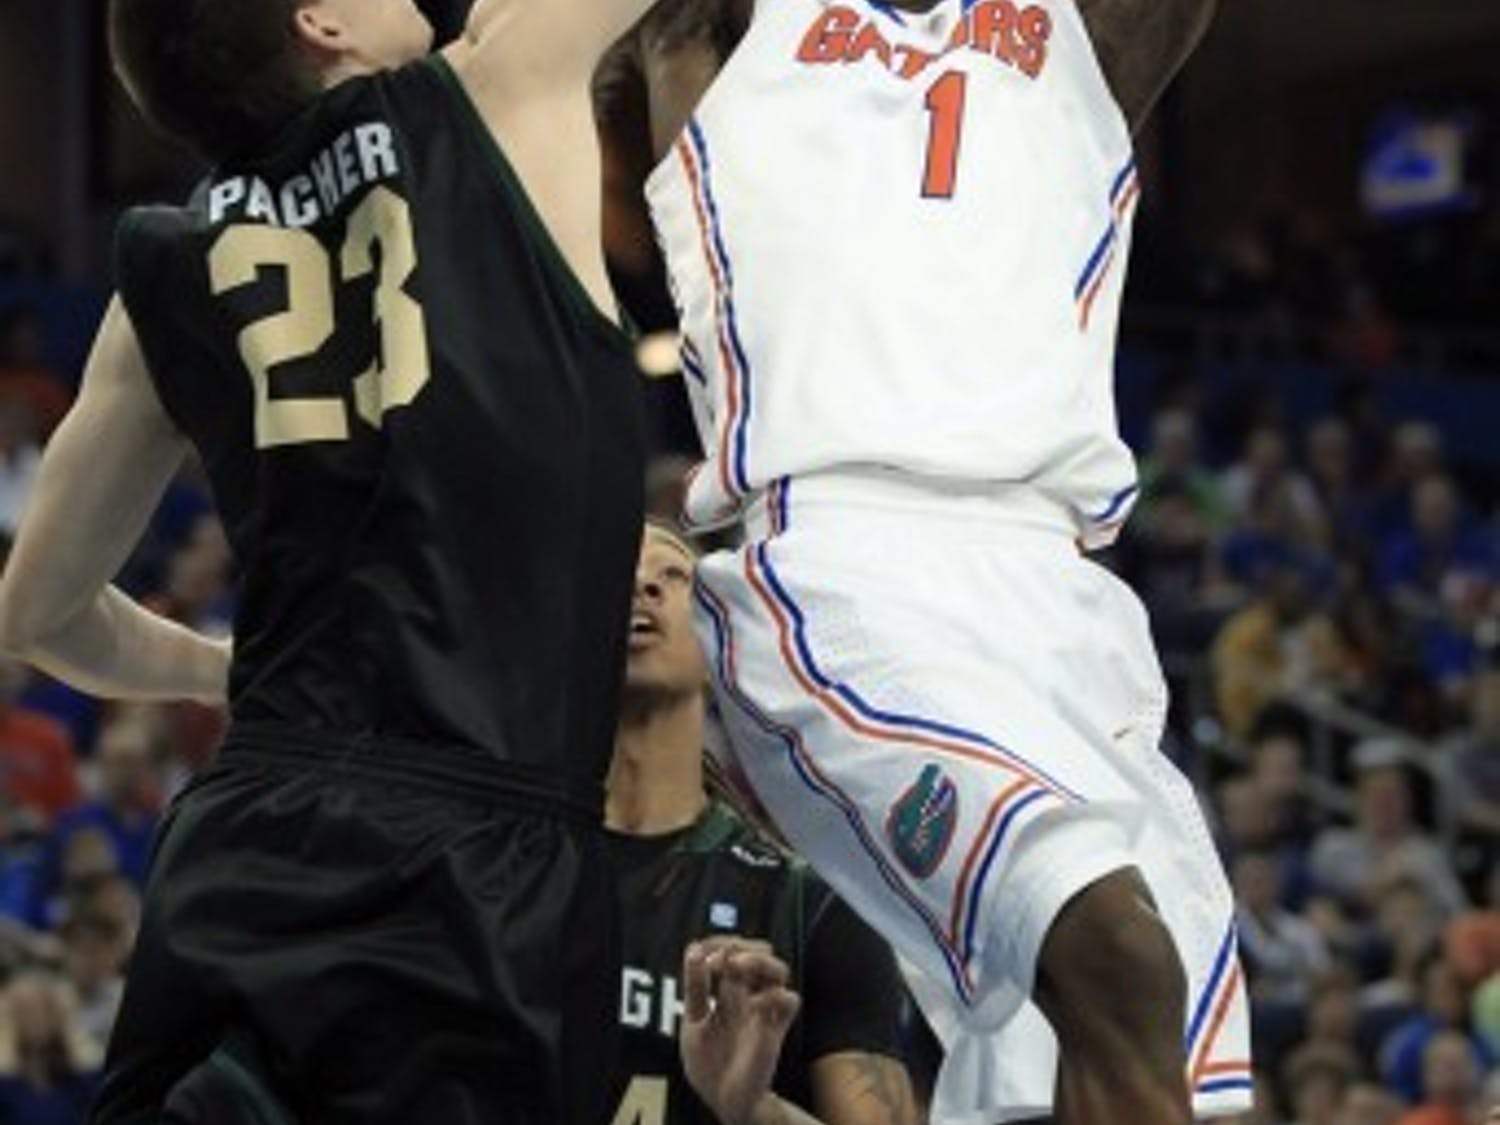 Florida junior guard Kenny Boynton scored 22 points Monday off a game-high six 3-pointers in a 78-65 win against Wright State.